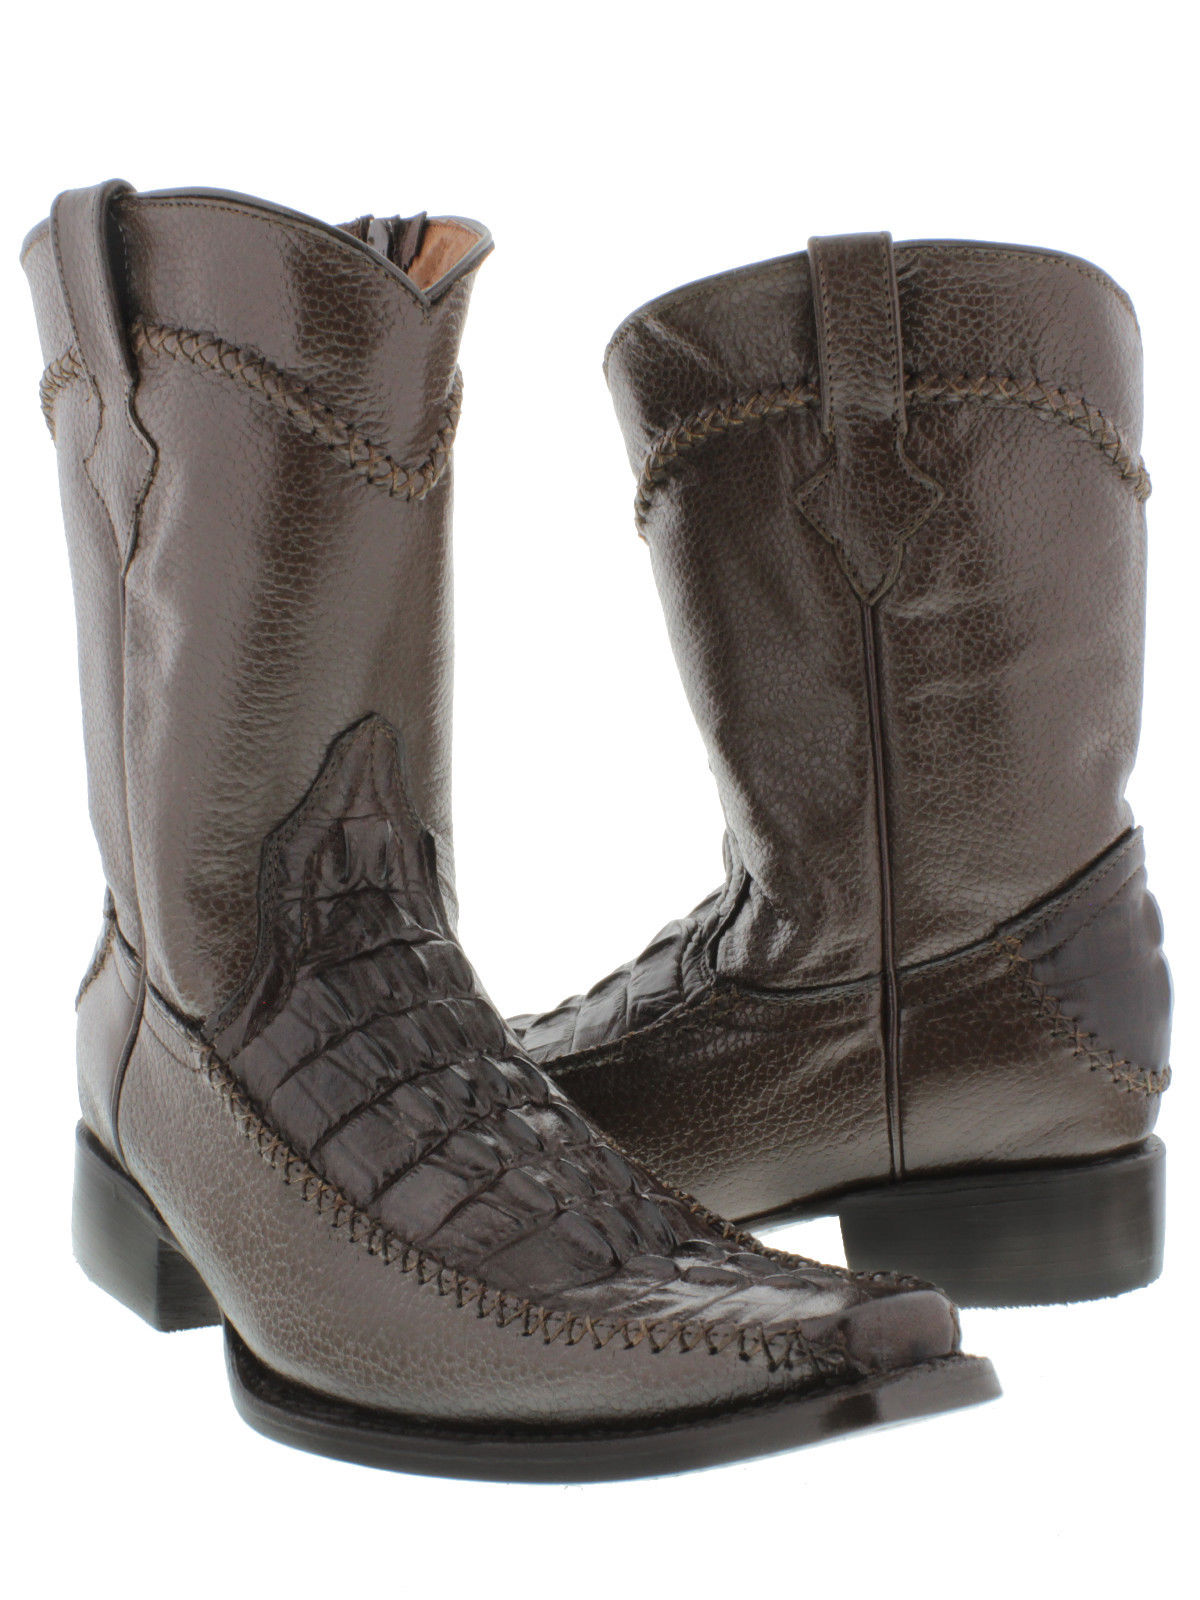 low price sale wholesale outlet cheapest Mens Brown Crocodile Tail Print Dress Leather Cowboy Boots Zip Up ...